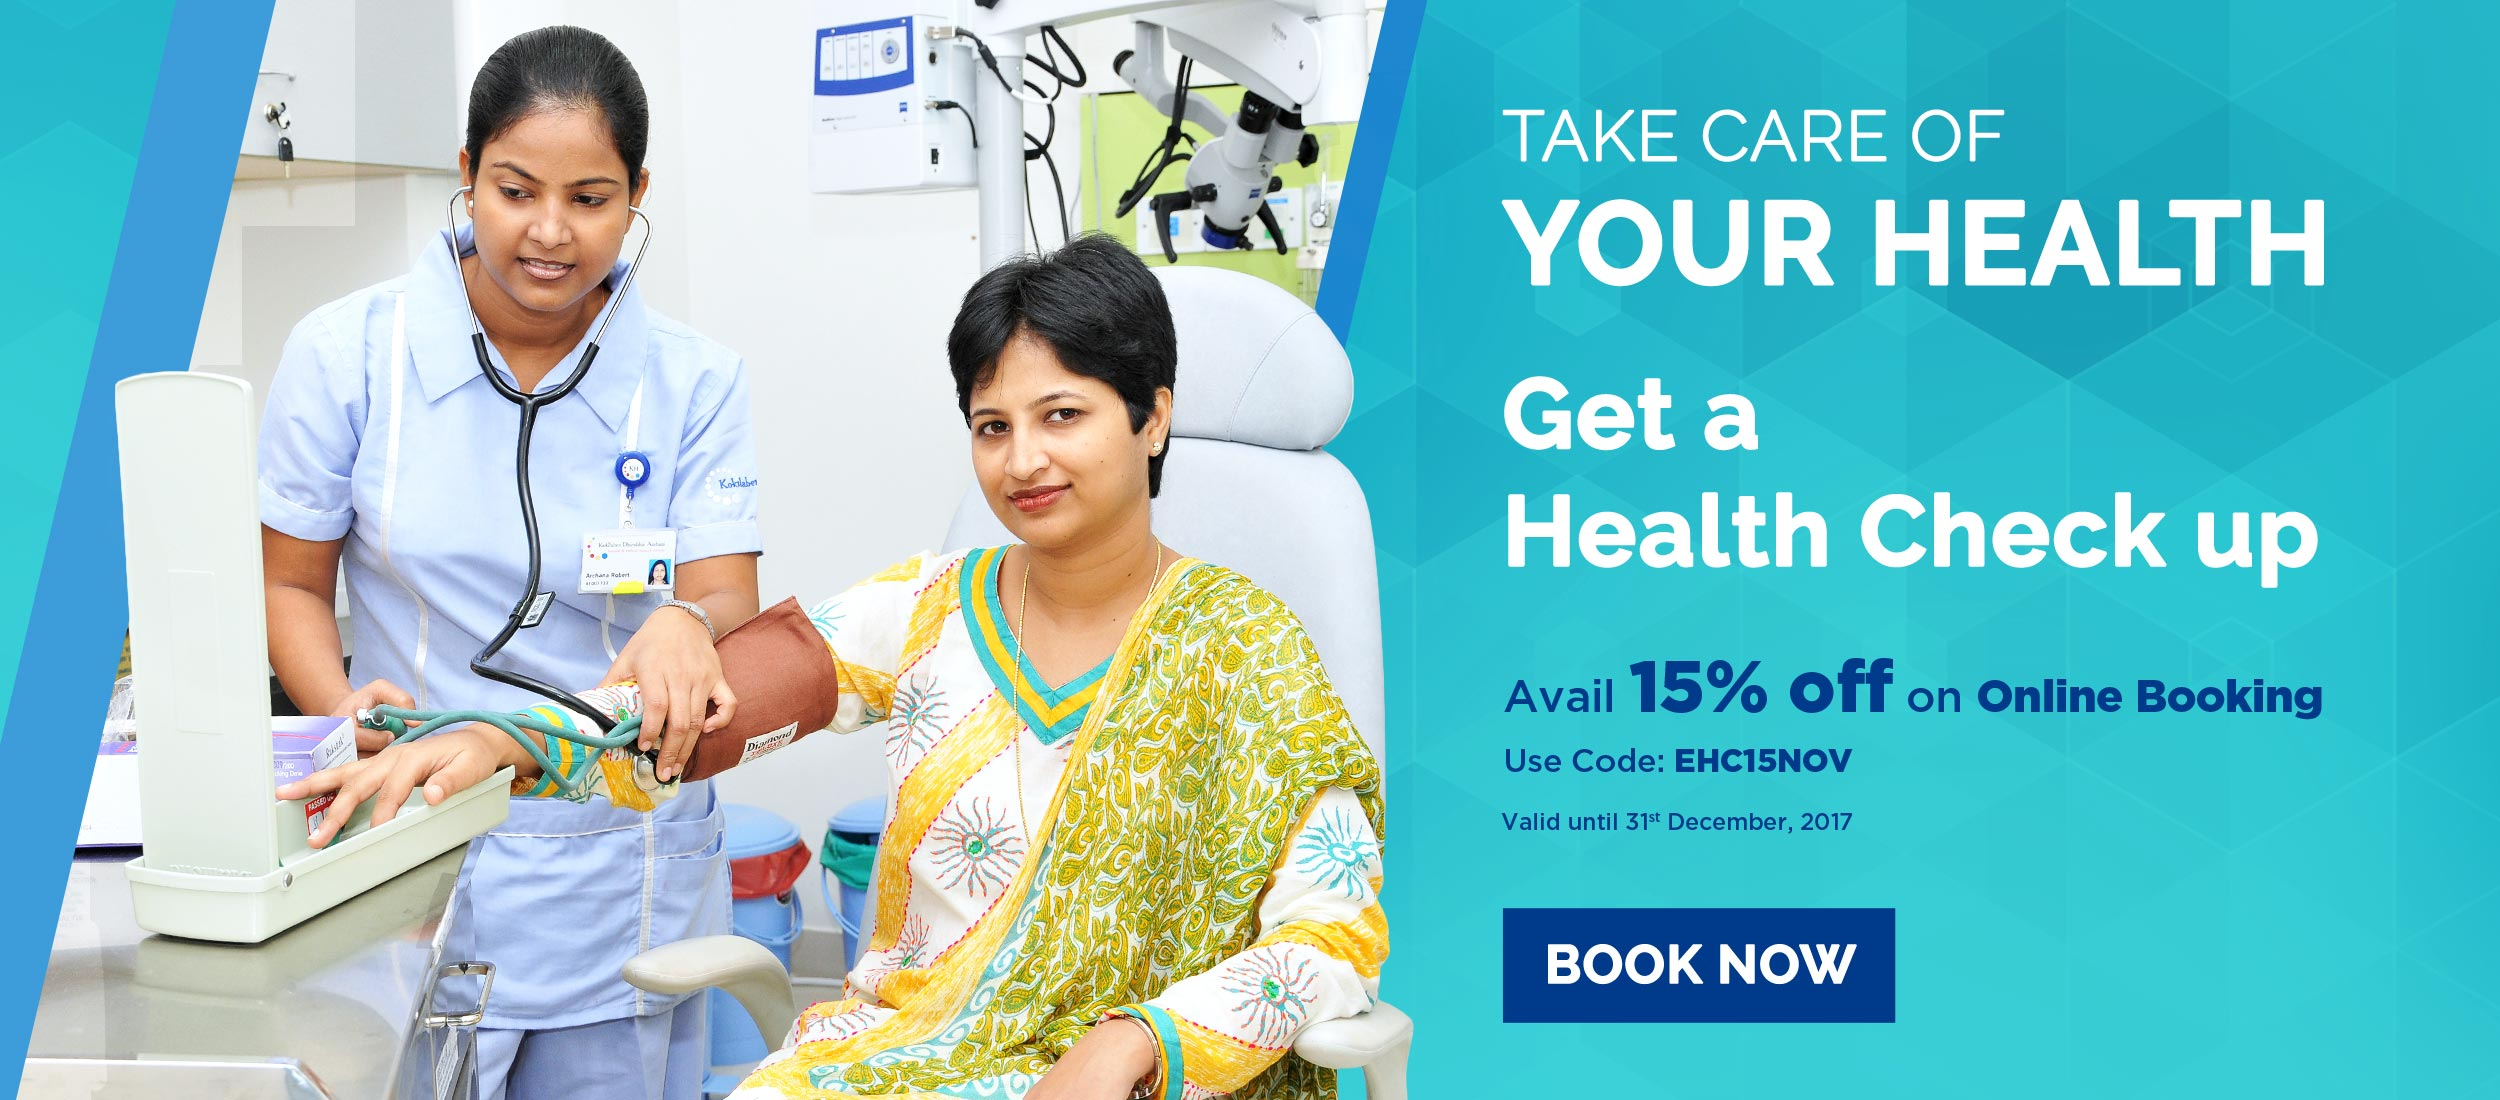 Kokilaben Dhirubhai Ambani Hospital - Health Checkups In India